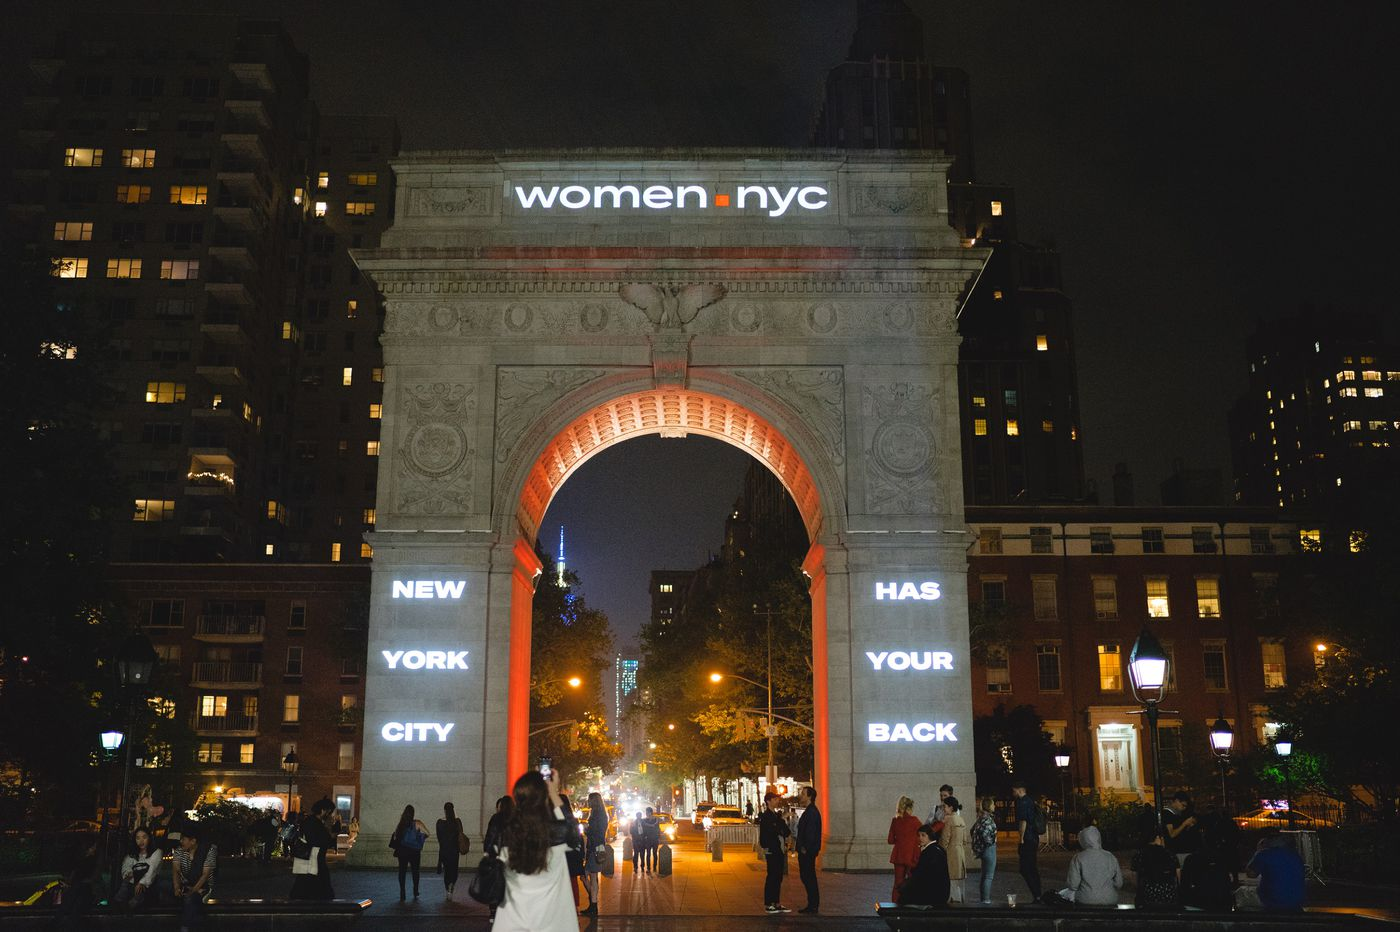 NYC created a website to support women. Philadelphia could follow